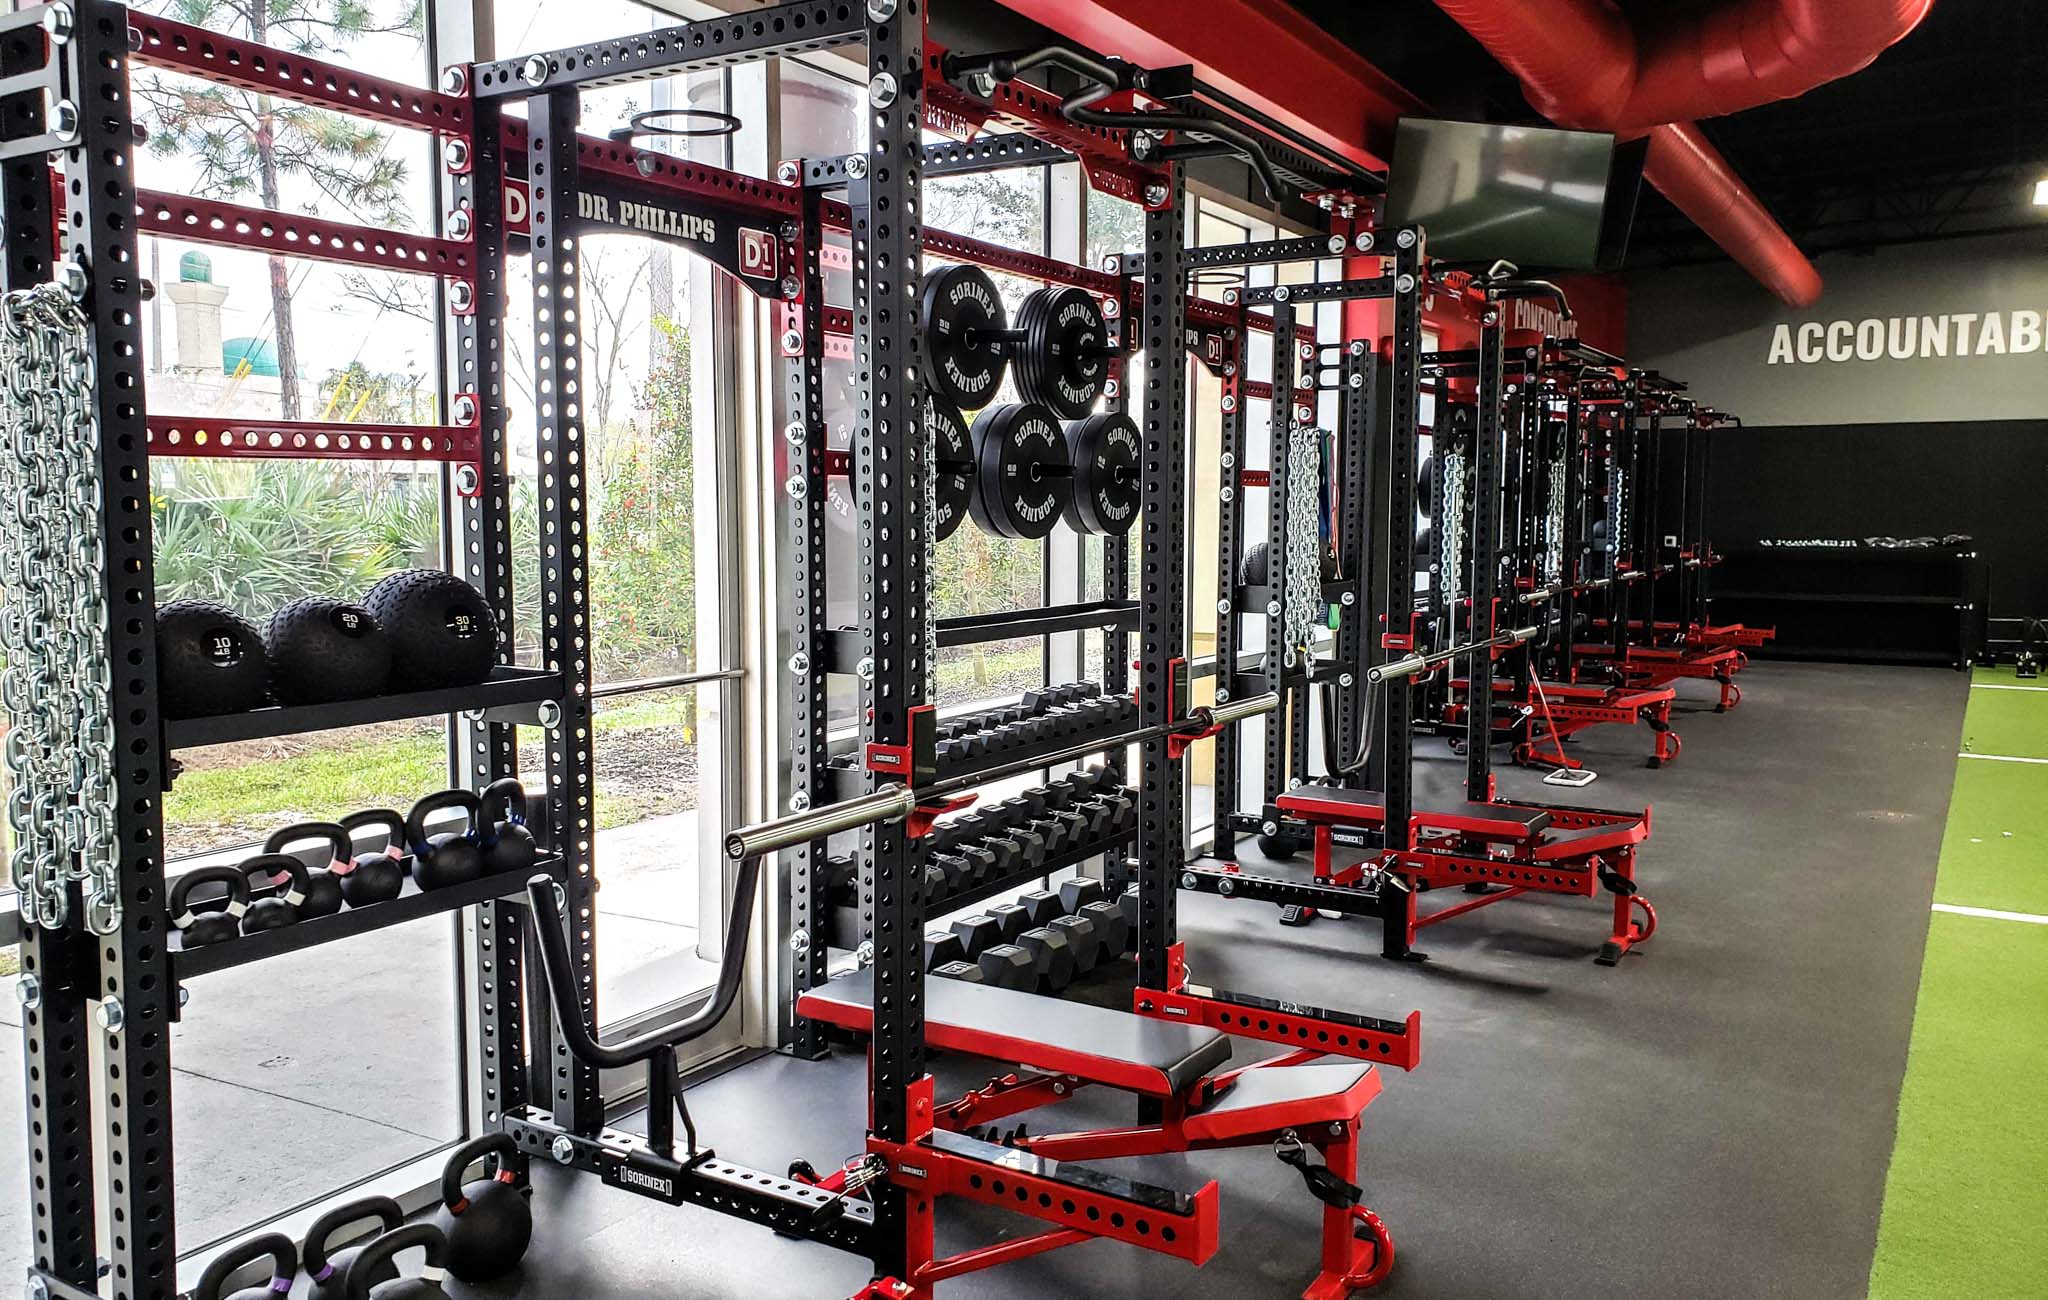 D1 Dr. Phillips power racks